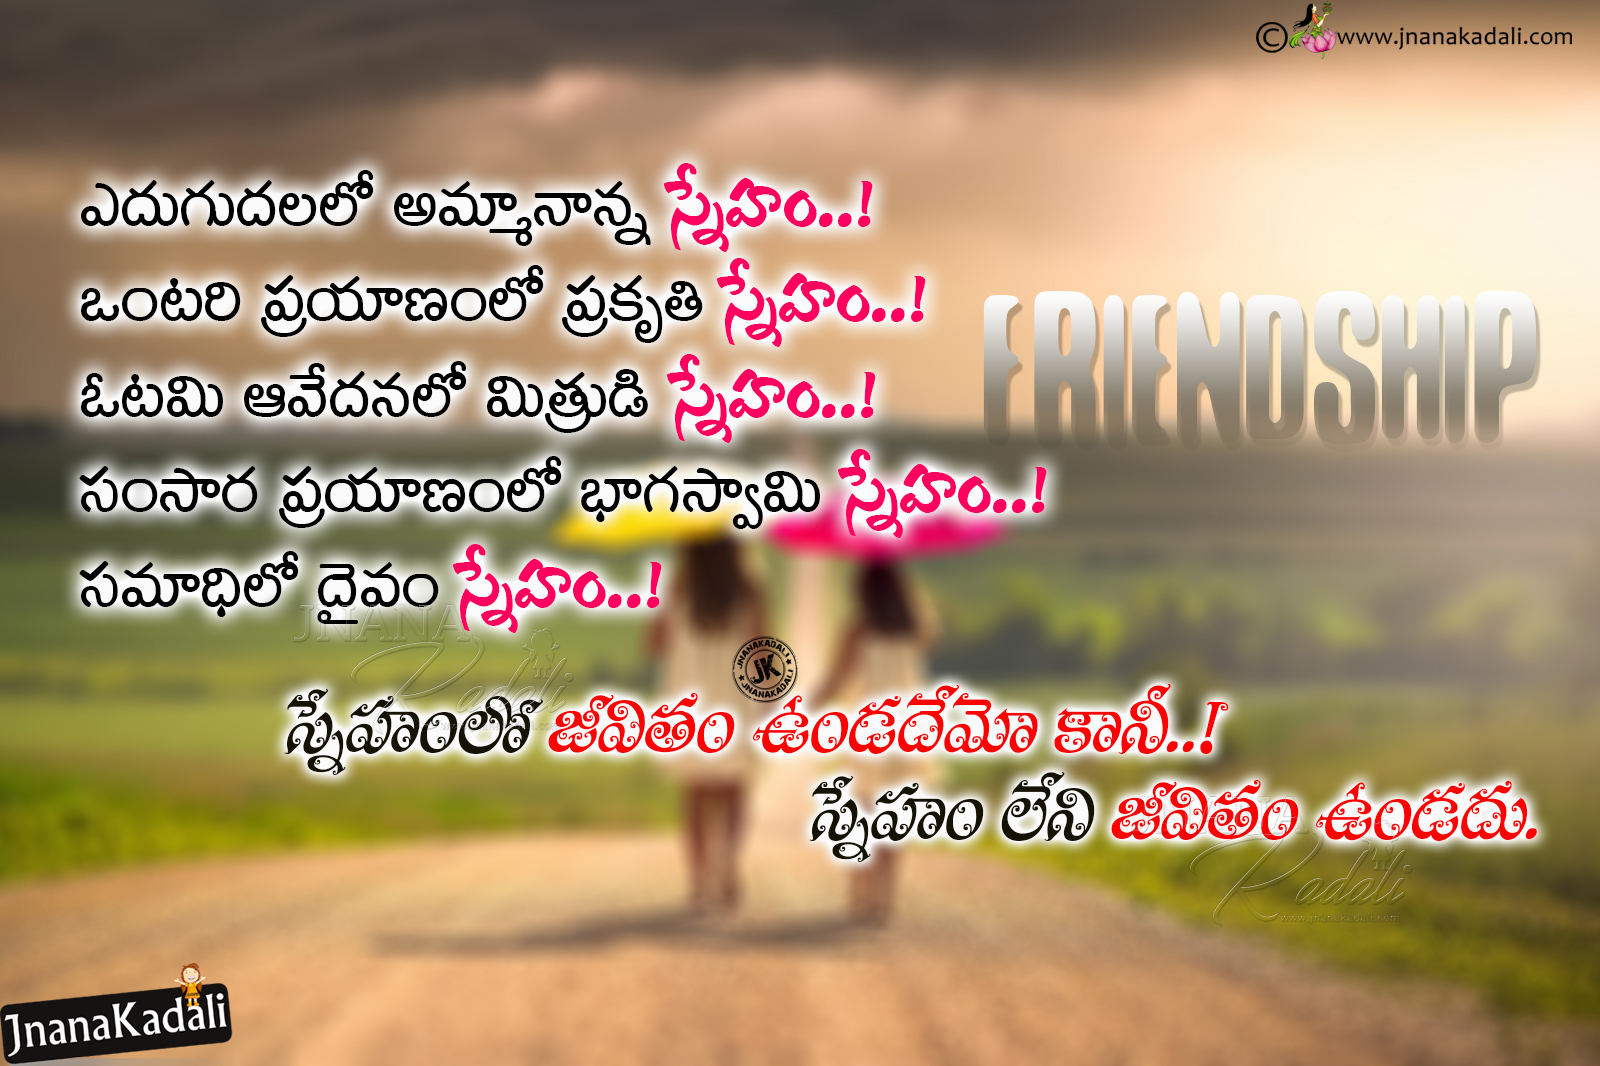 Touching Quotes About Friendship Pleasing Latest Best Telugu Friendship Heart Touching Quotes With Cute